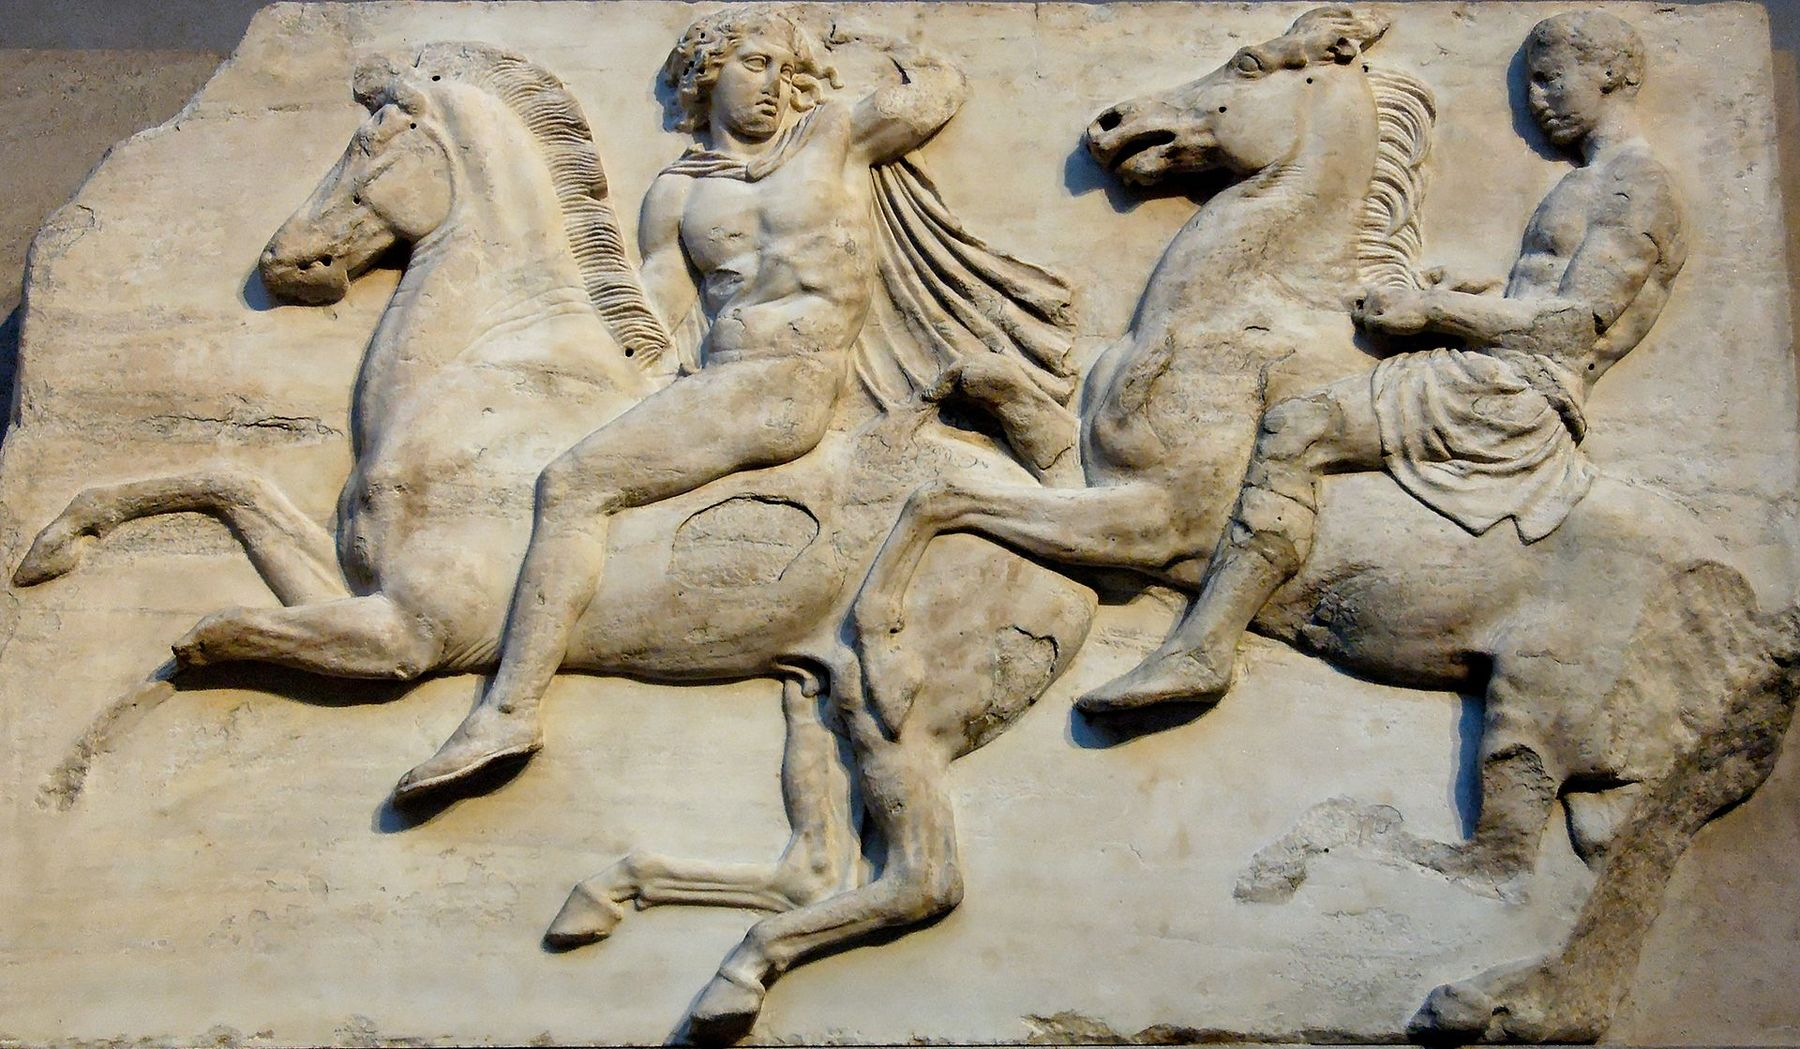 Calvalcade frieze on the Parthenon. Photo by Jastrow